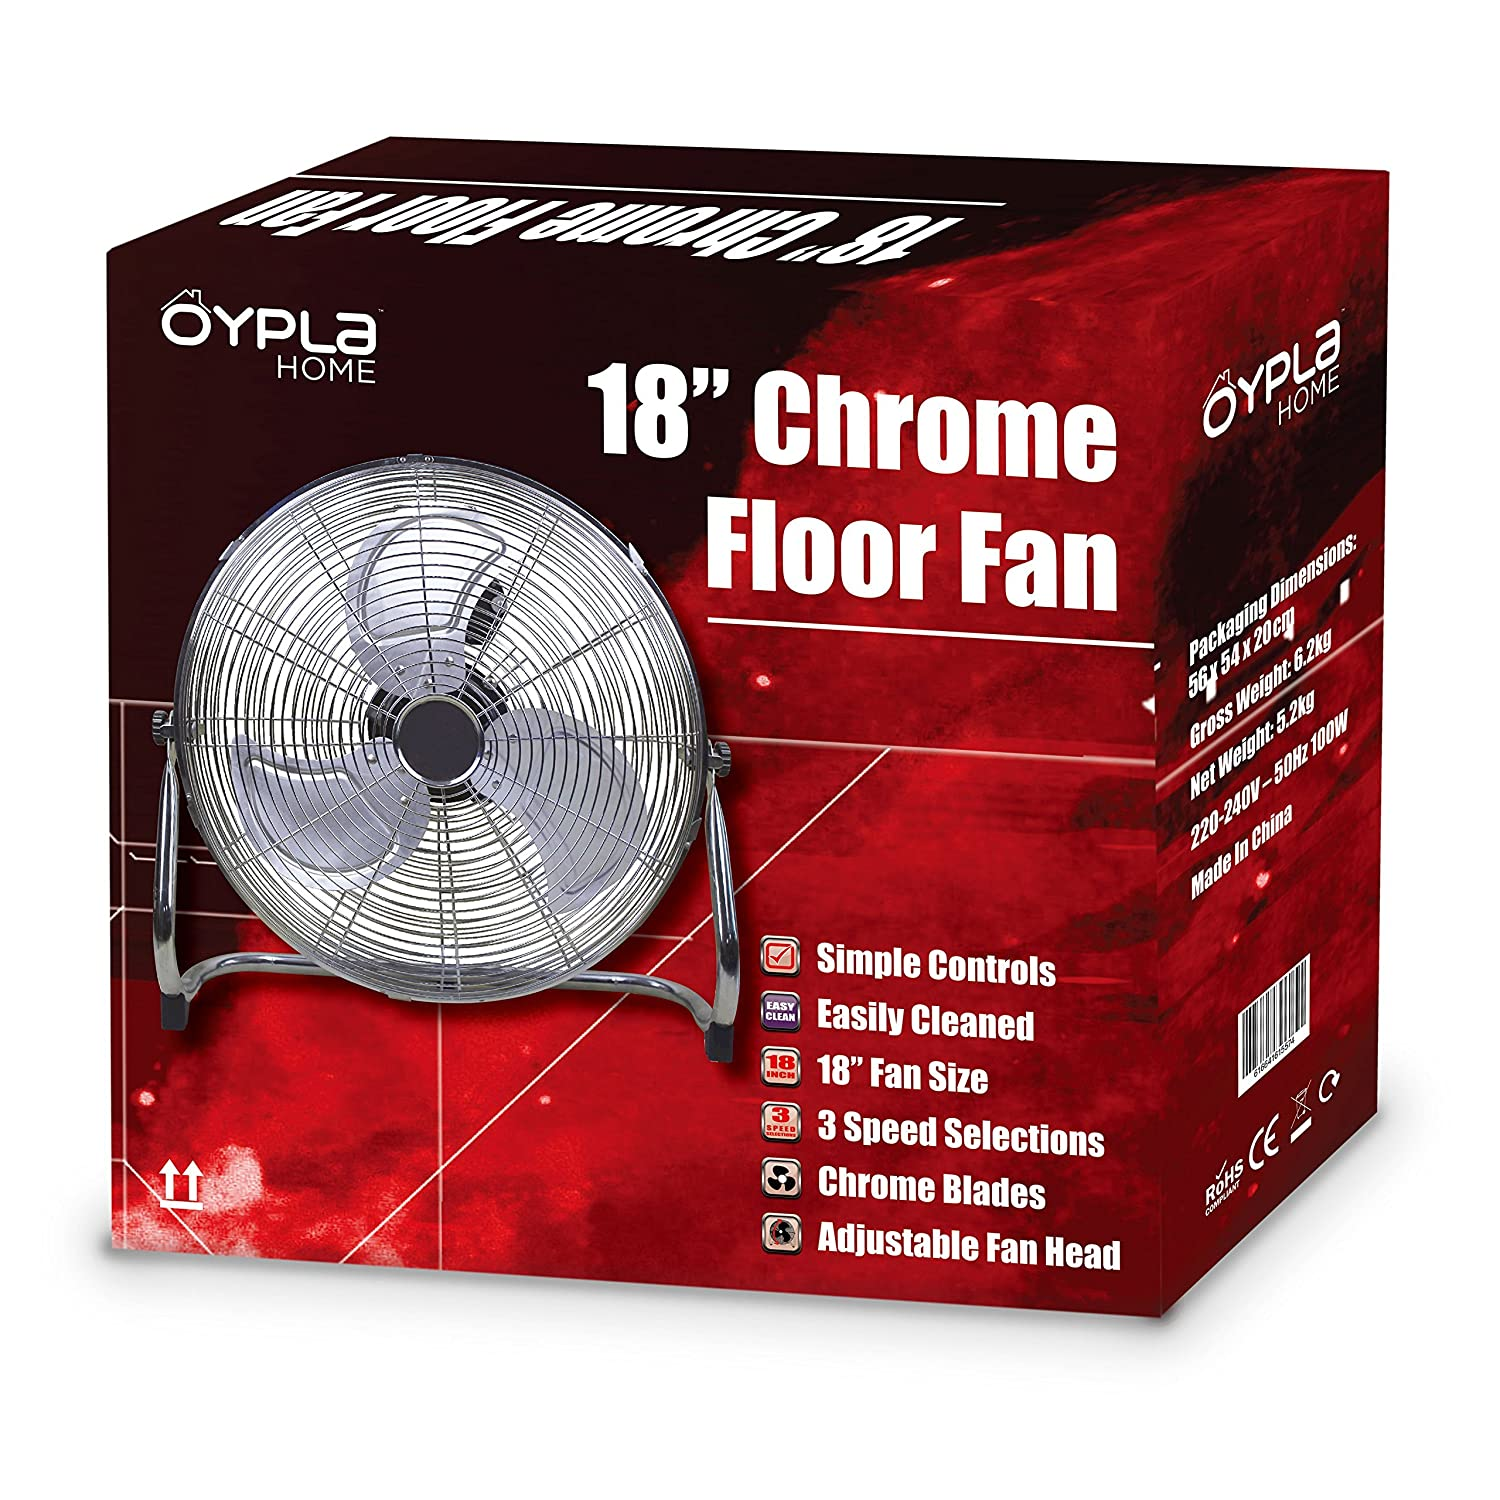 Oypla Electrical 18 Chrome 3 Speed Free Standing Gym Fan Amazonco 115 Volt Bloweer Motor Wiring Schematic Kitchen Home